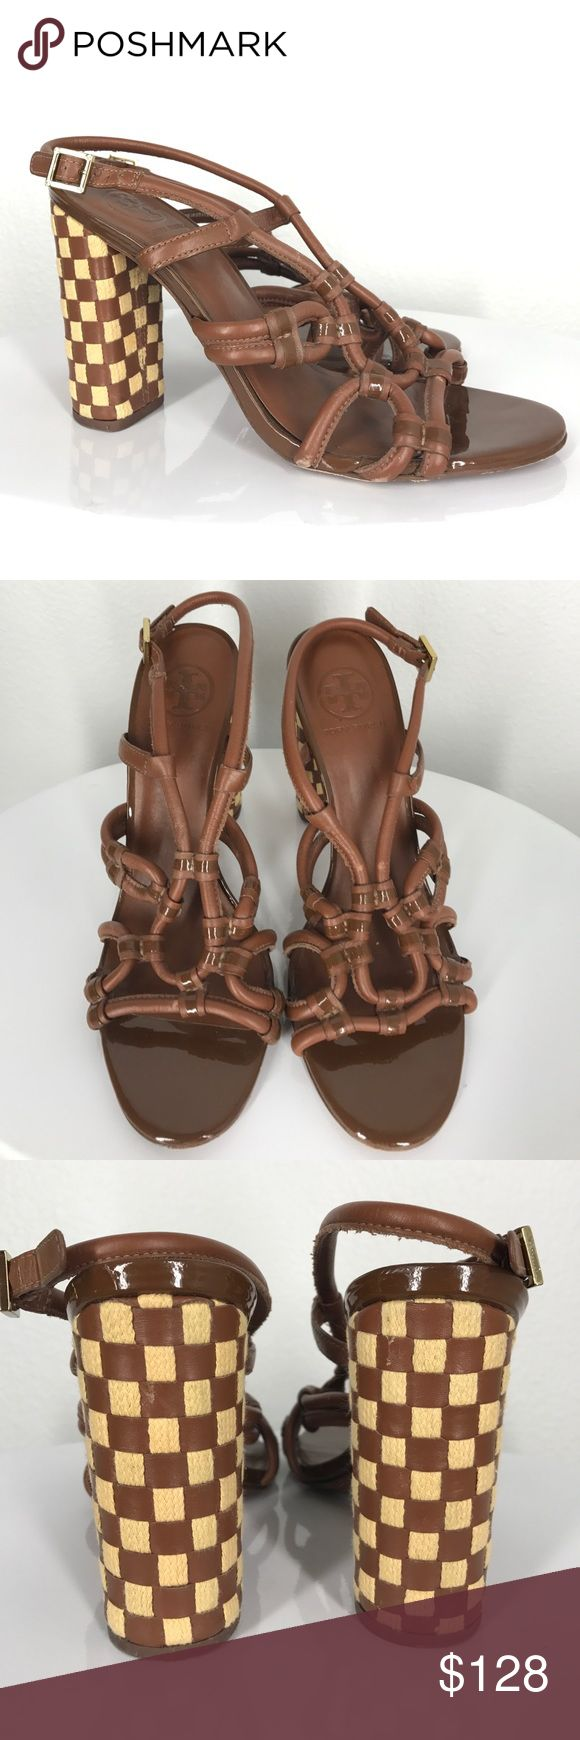 """Tory Burch checkered brown heels size 9 Stunning checkered heels. They are in great used condition. Some minor scuffs on the leather straps. The heels are about 4"""" tall. The cross straps on the front have some wear. The back of the left heel has a very tiny cut in the leather. Tory Burch Shoes Heels"""